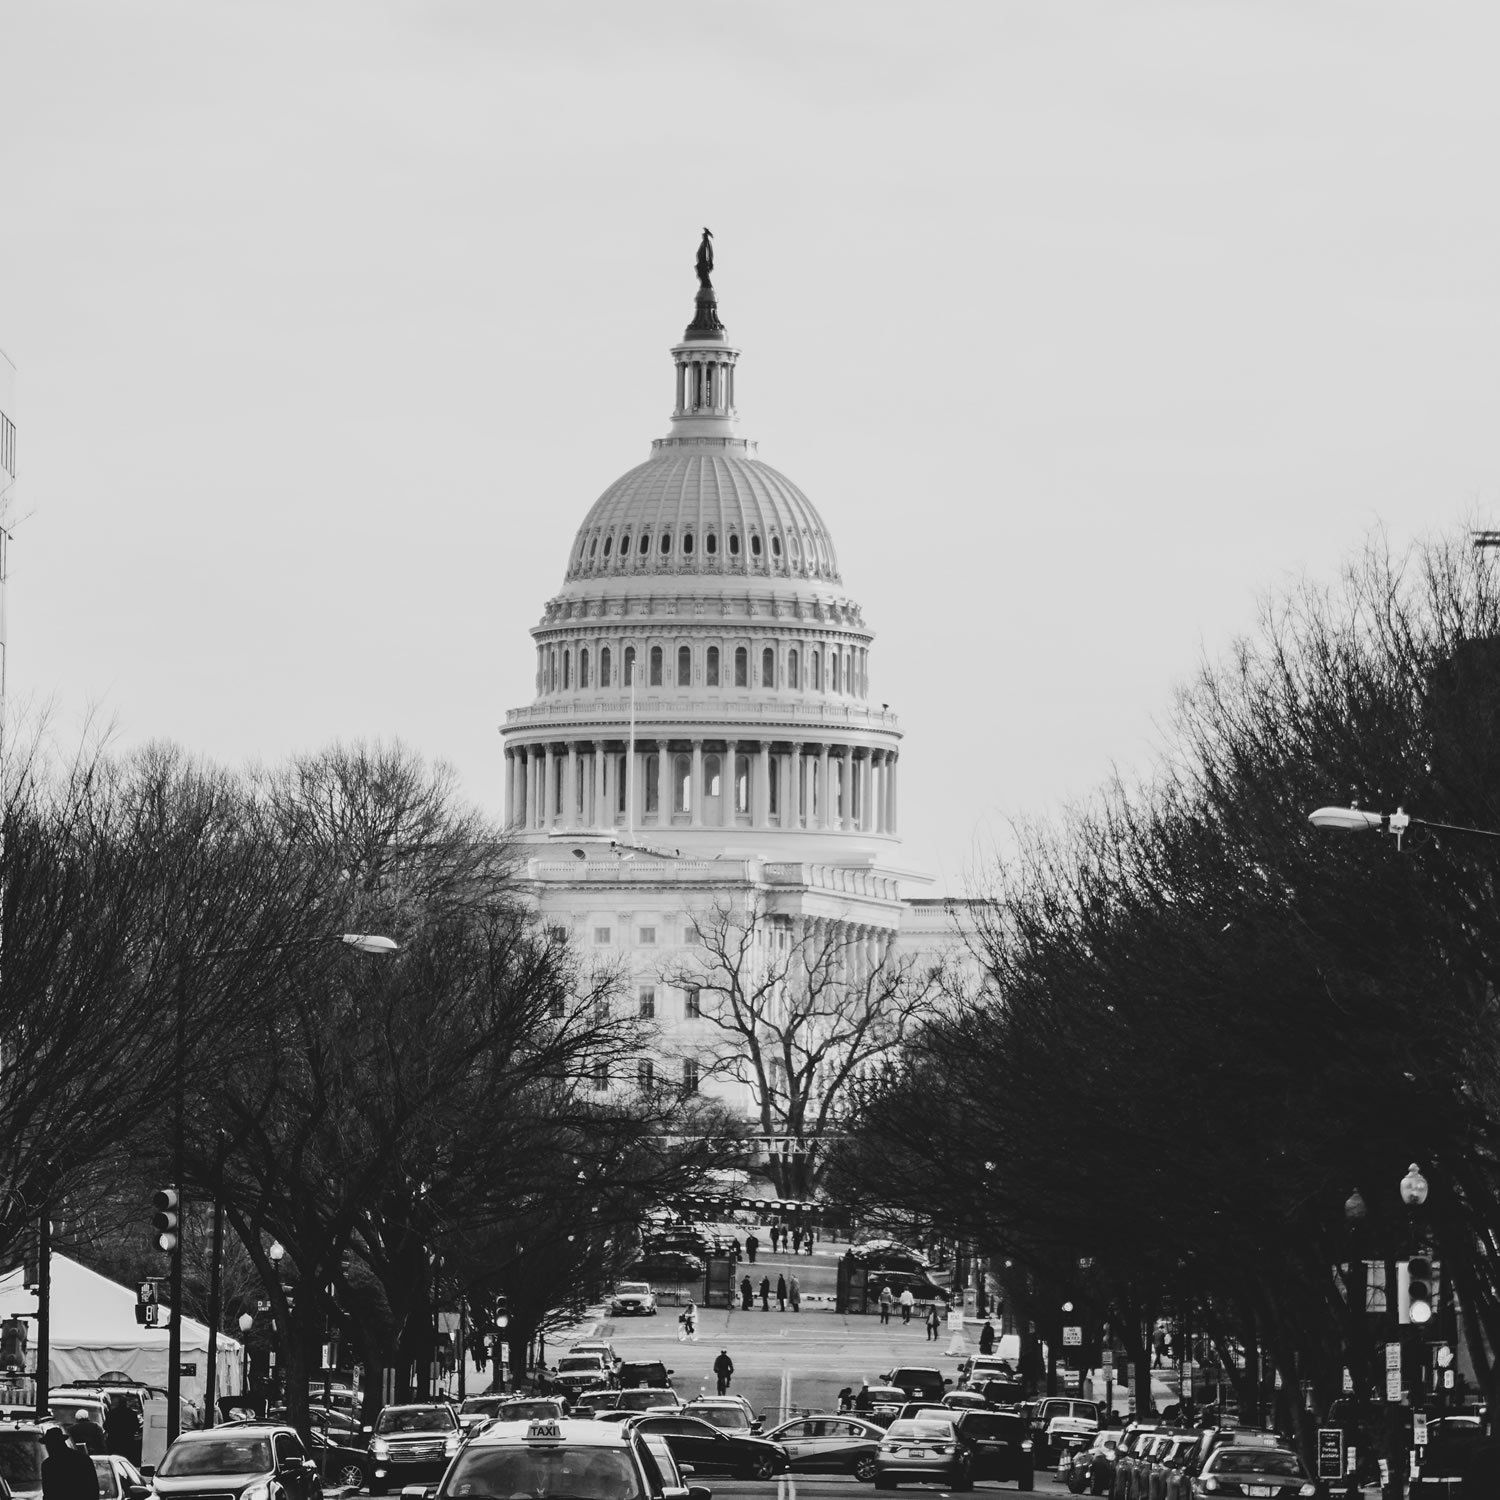 Reflections about Testifying Before the Subcommittee on Health, Education, Labor and Pensions